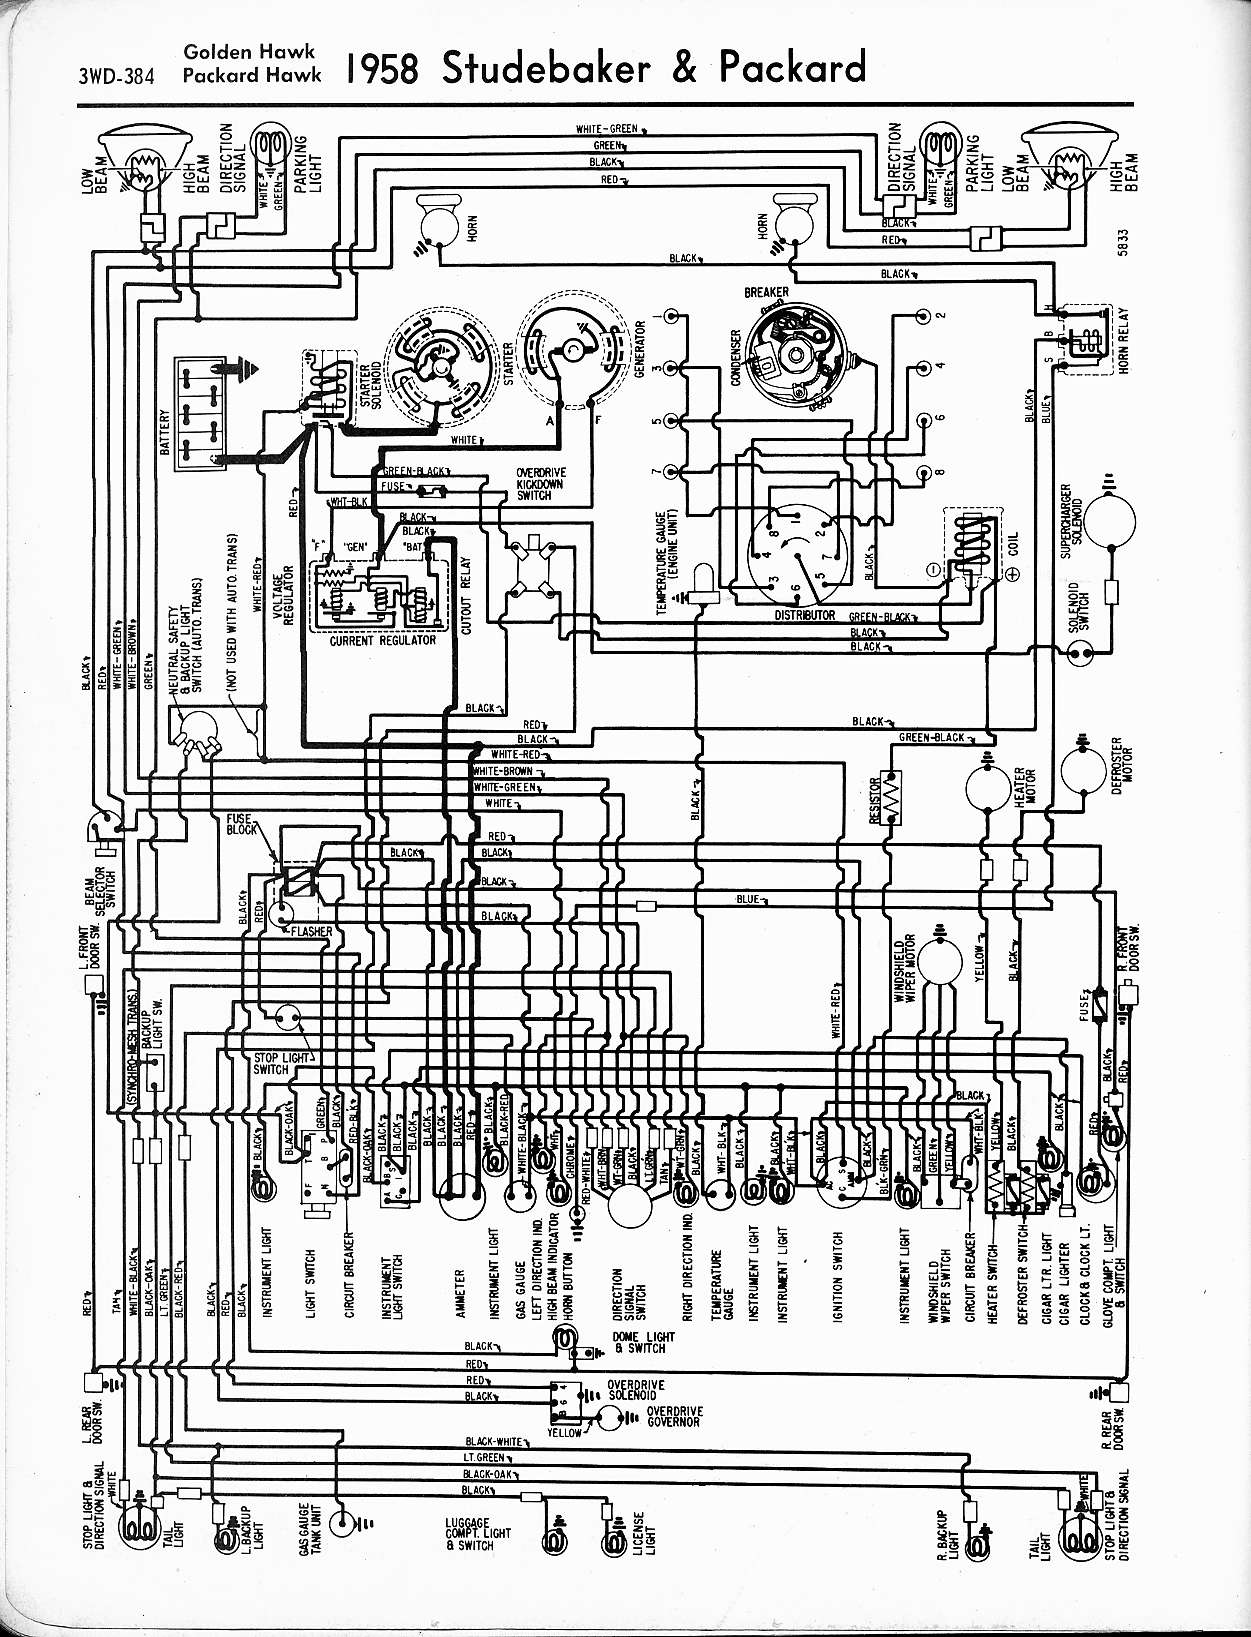 Lennox Wiring Color Trusted Diagrams Schematic Packard Motor To Furnace House Diagram Symbols U2022 Automotive Wire Code Standard